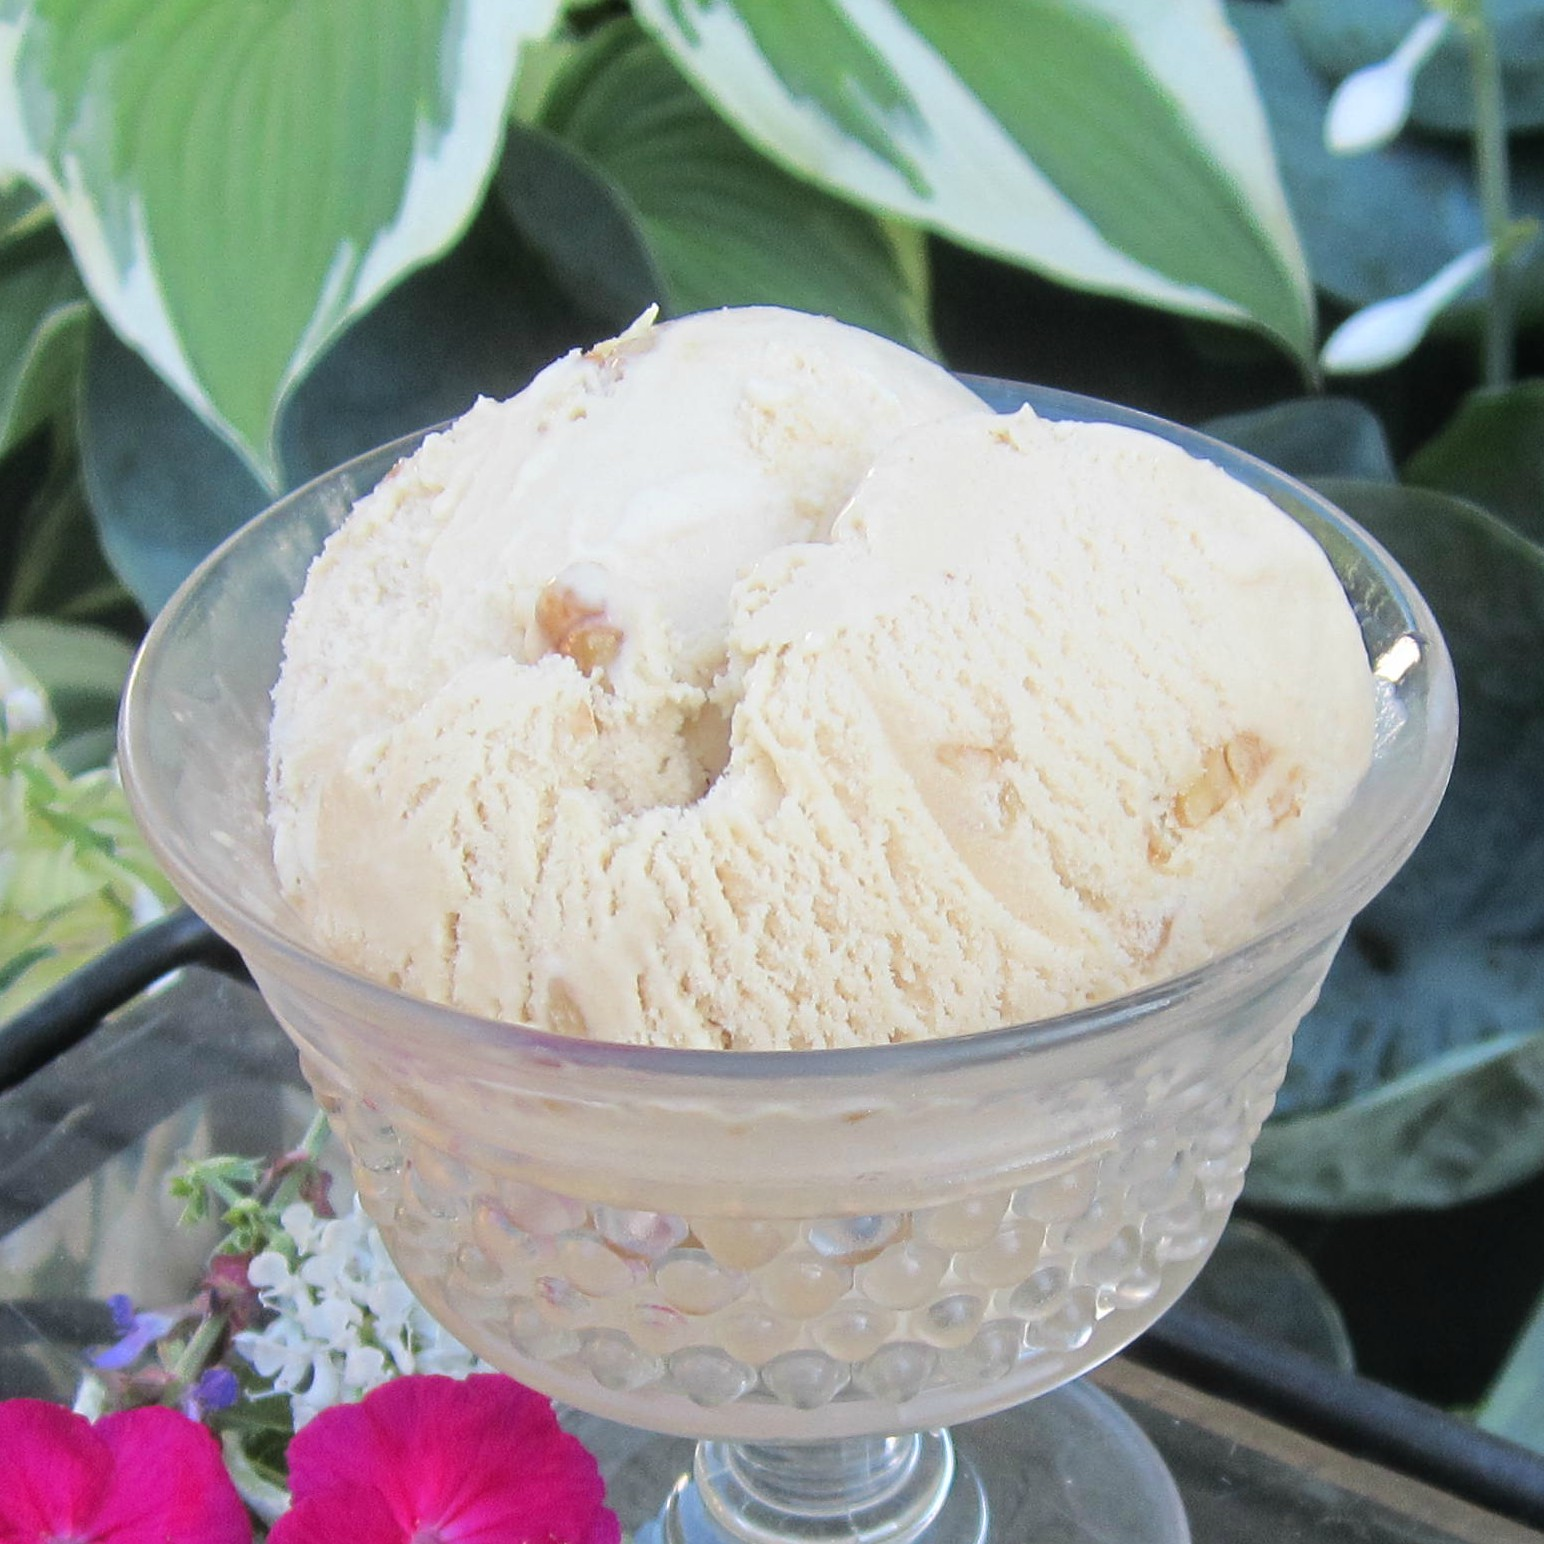 Maple Walnut Ice Cream Deb C